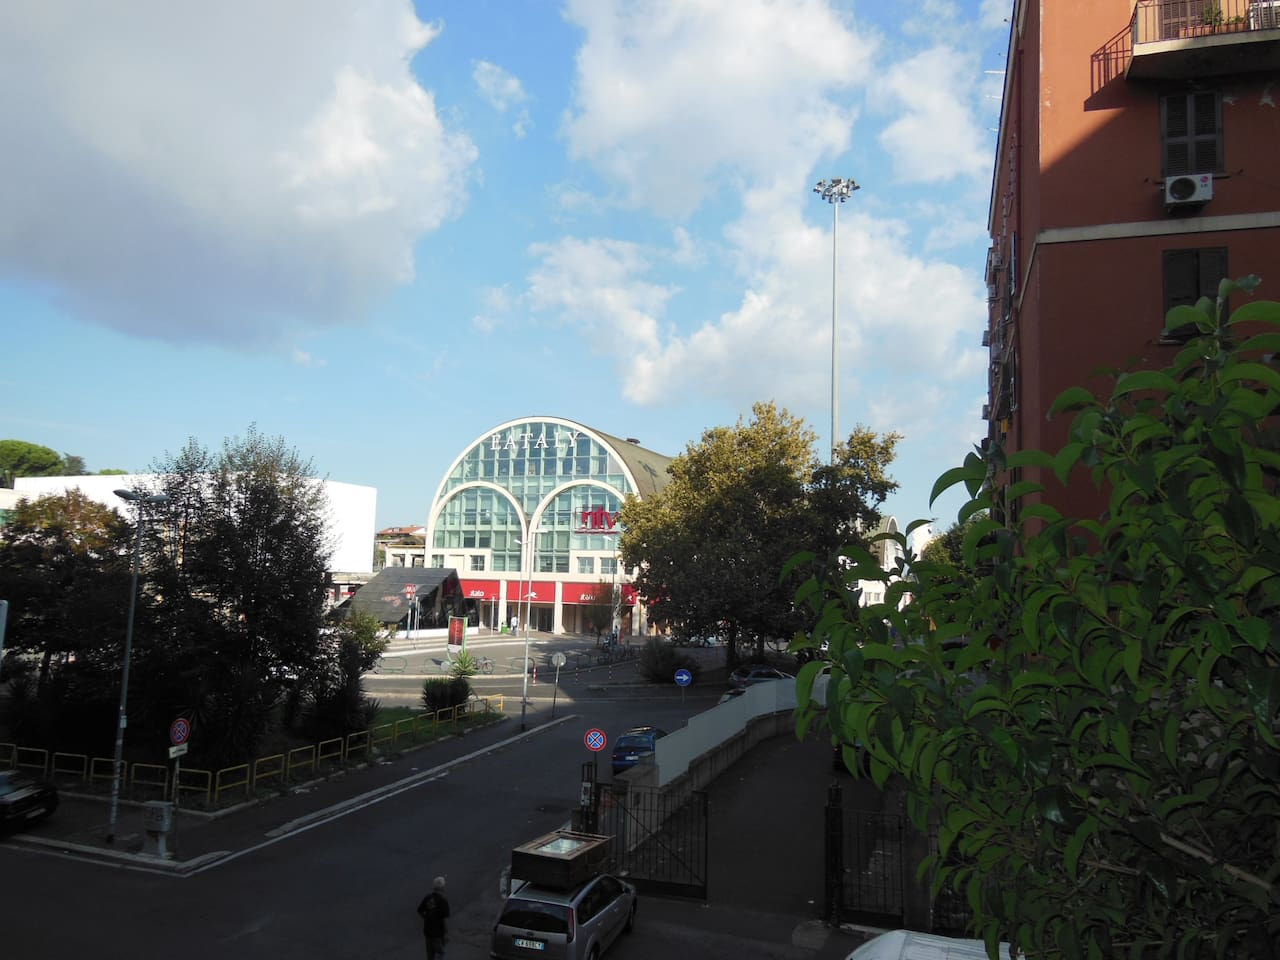 view of Eataly, Rome's famous gourmet supermarket